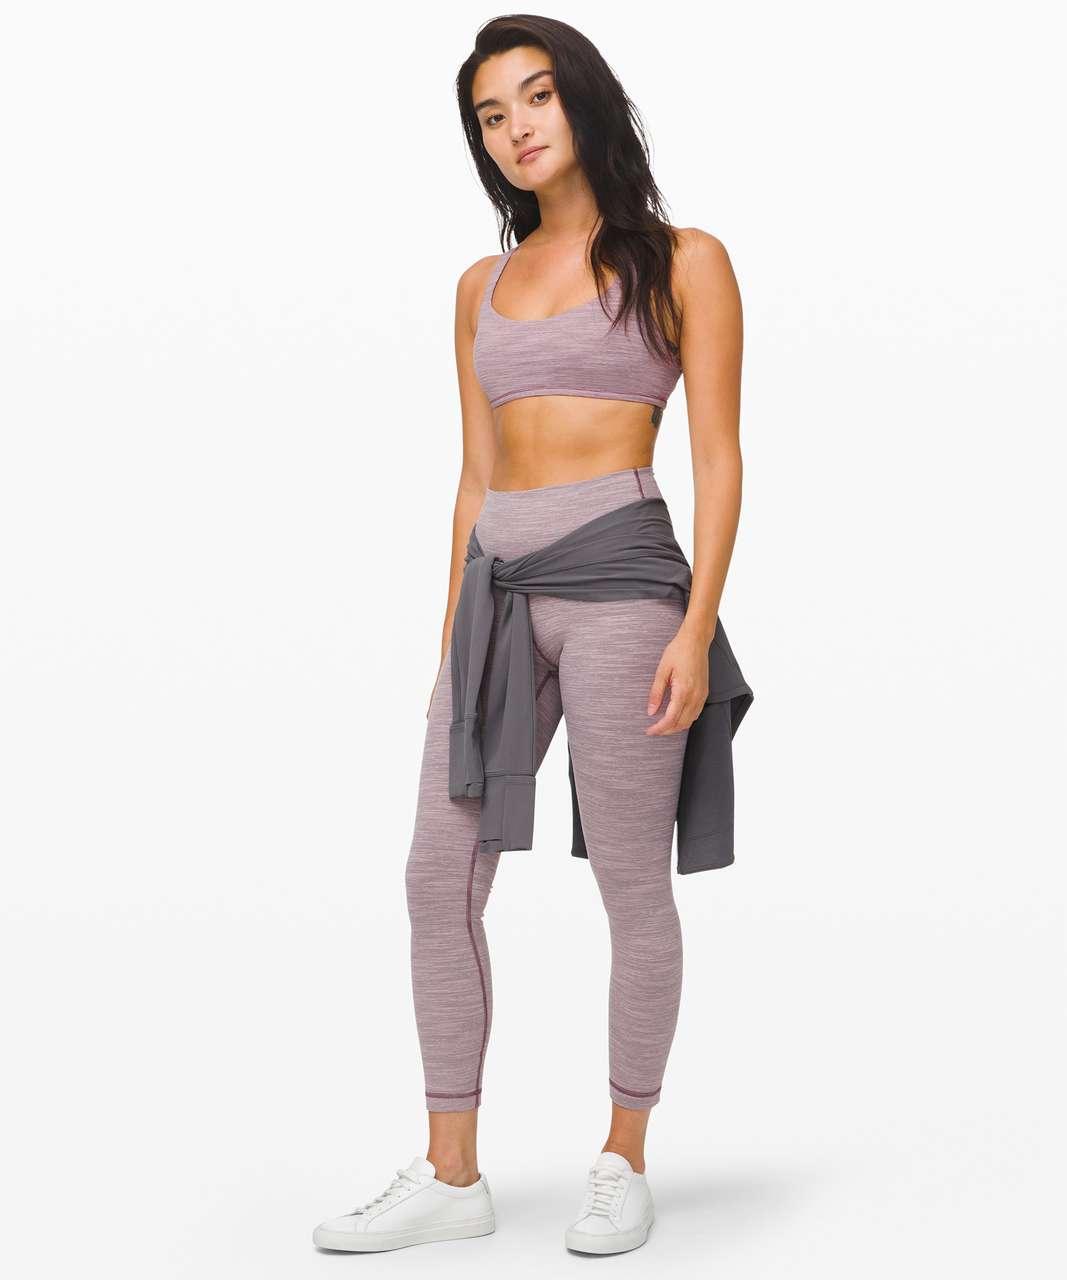 Lululemon Free To Be Bra (Wild) - Wee Are From Space Frosted Mulberry Black Currant